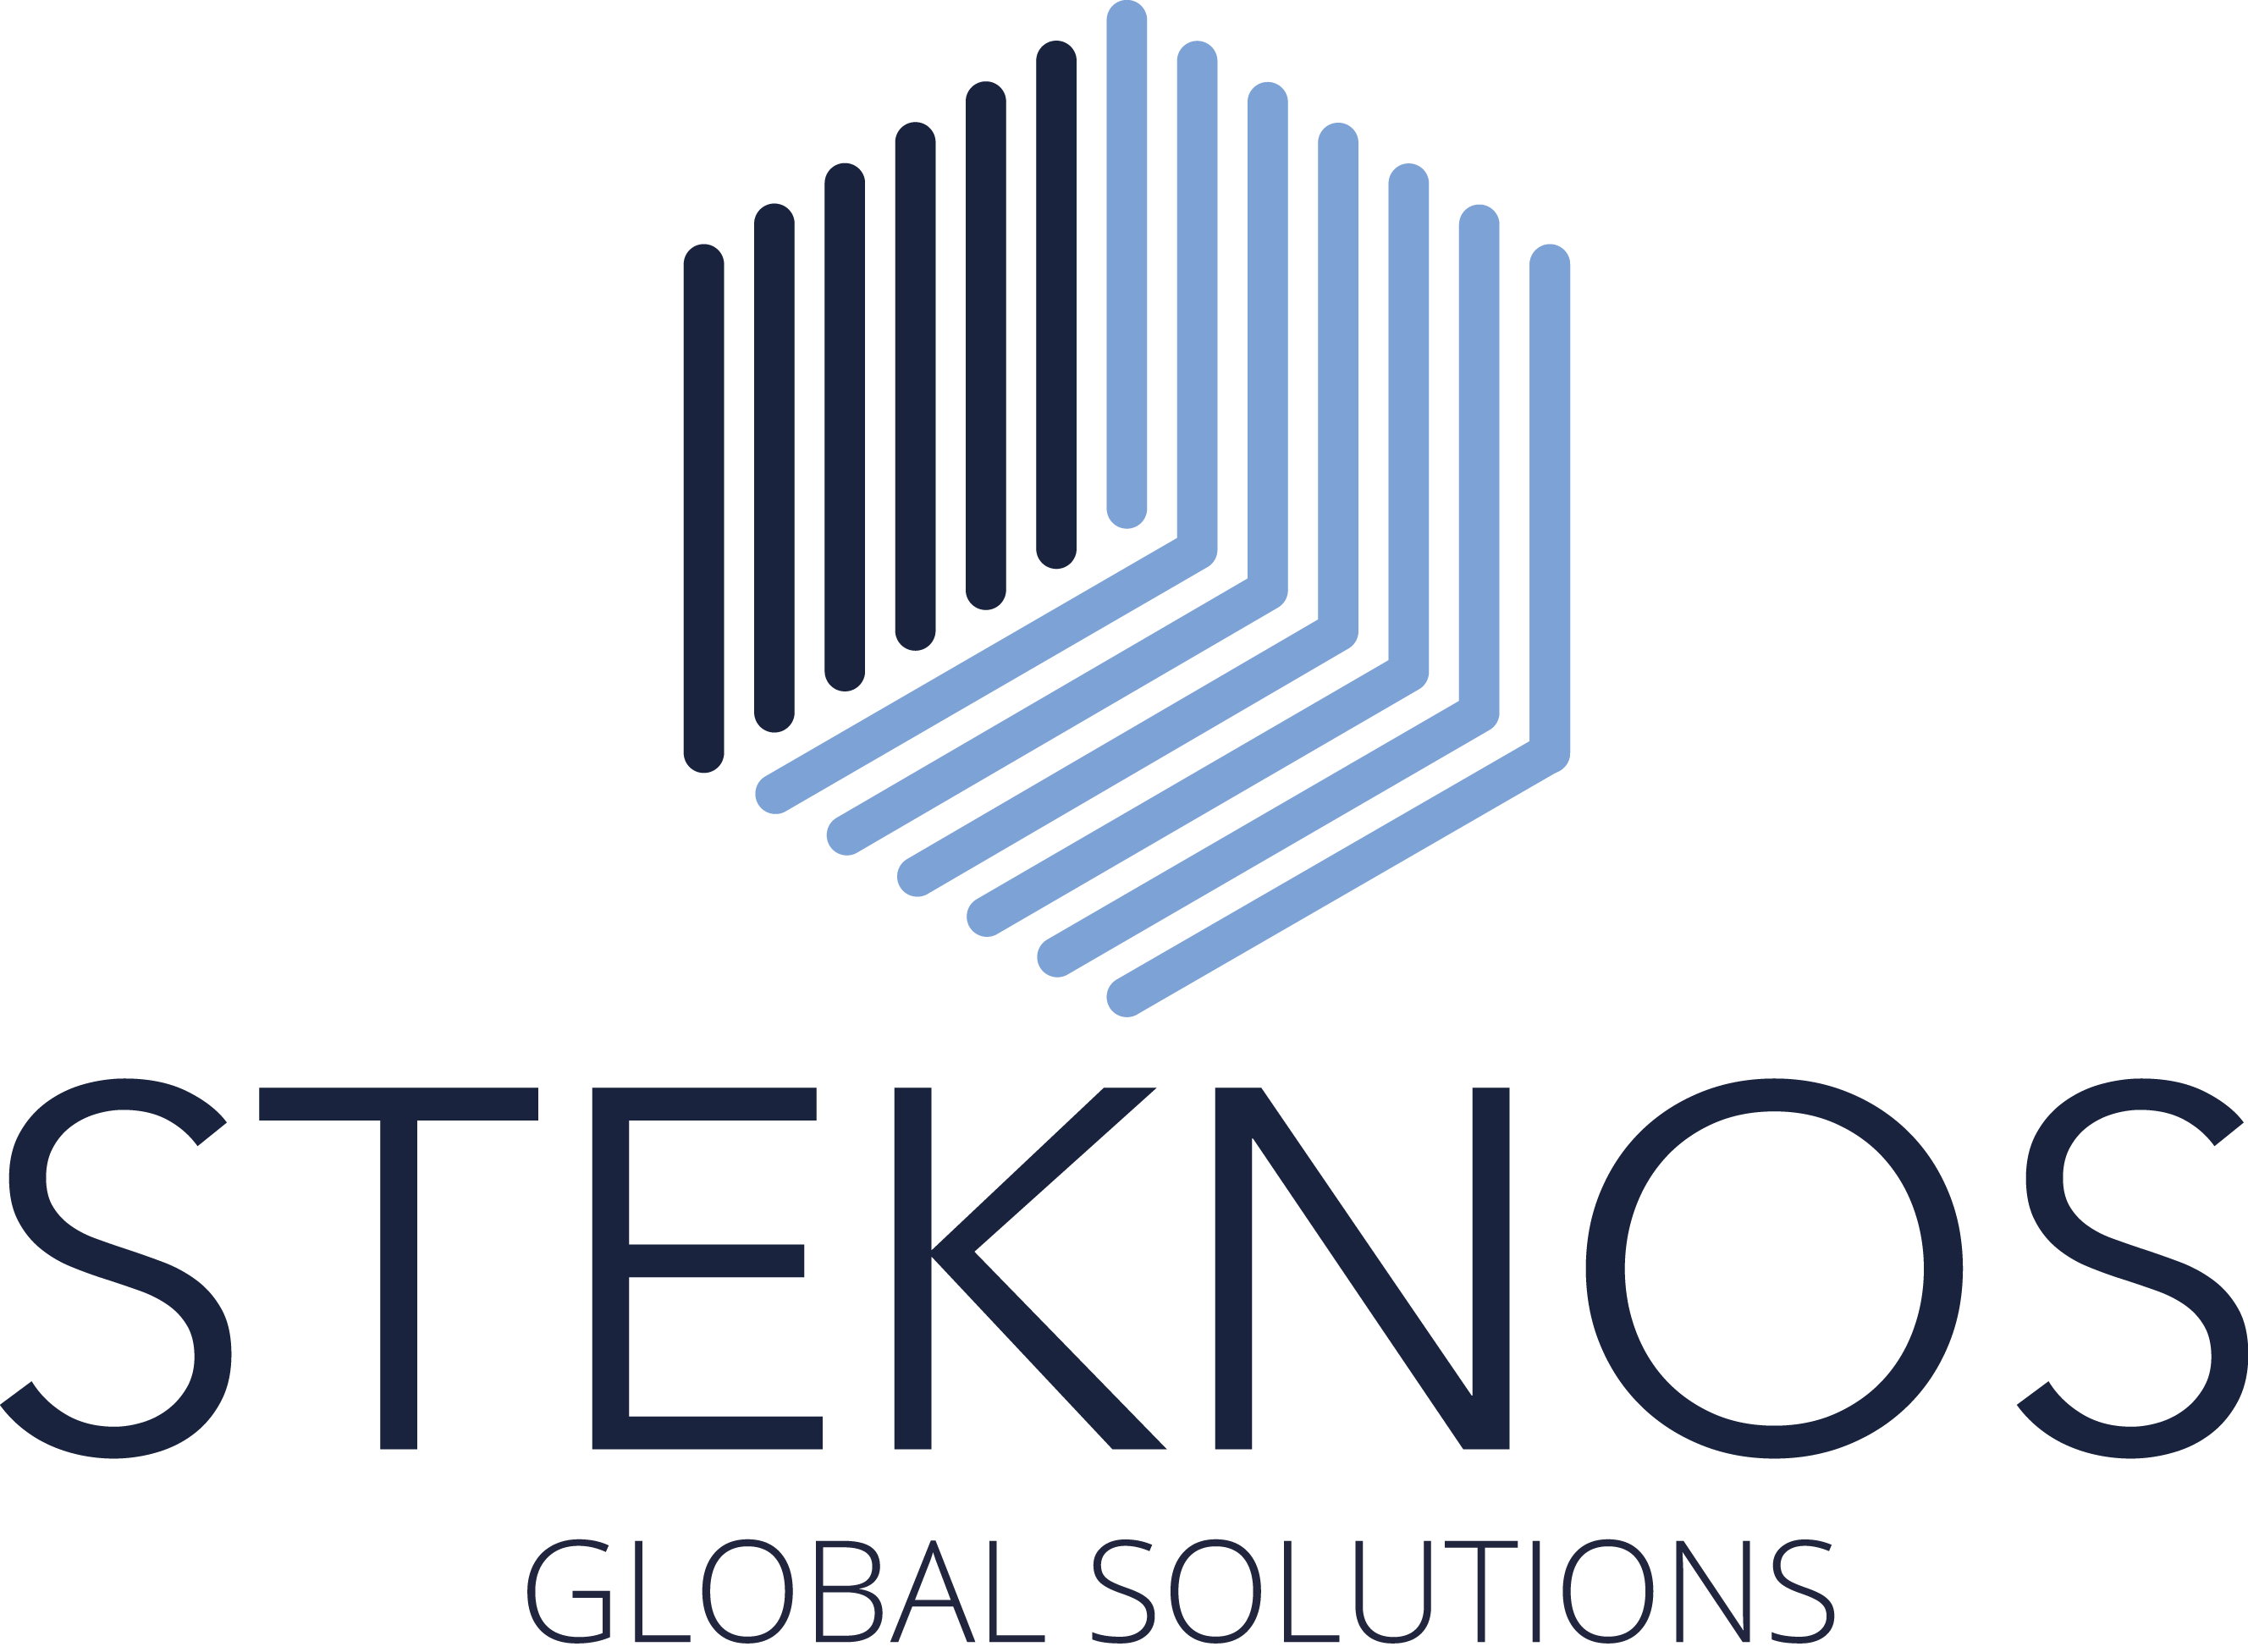 Steknos - Industrial Solutions